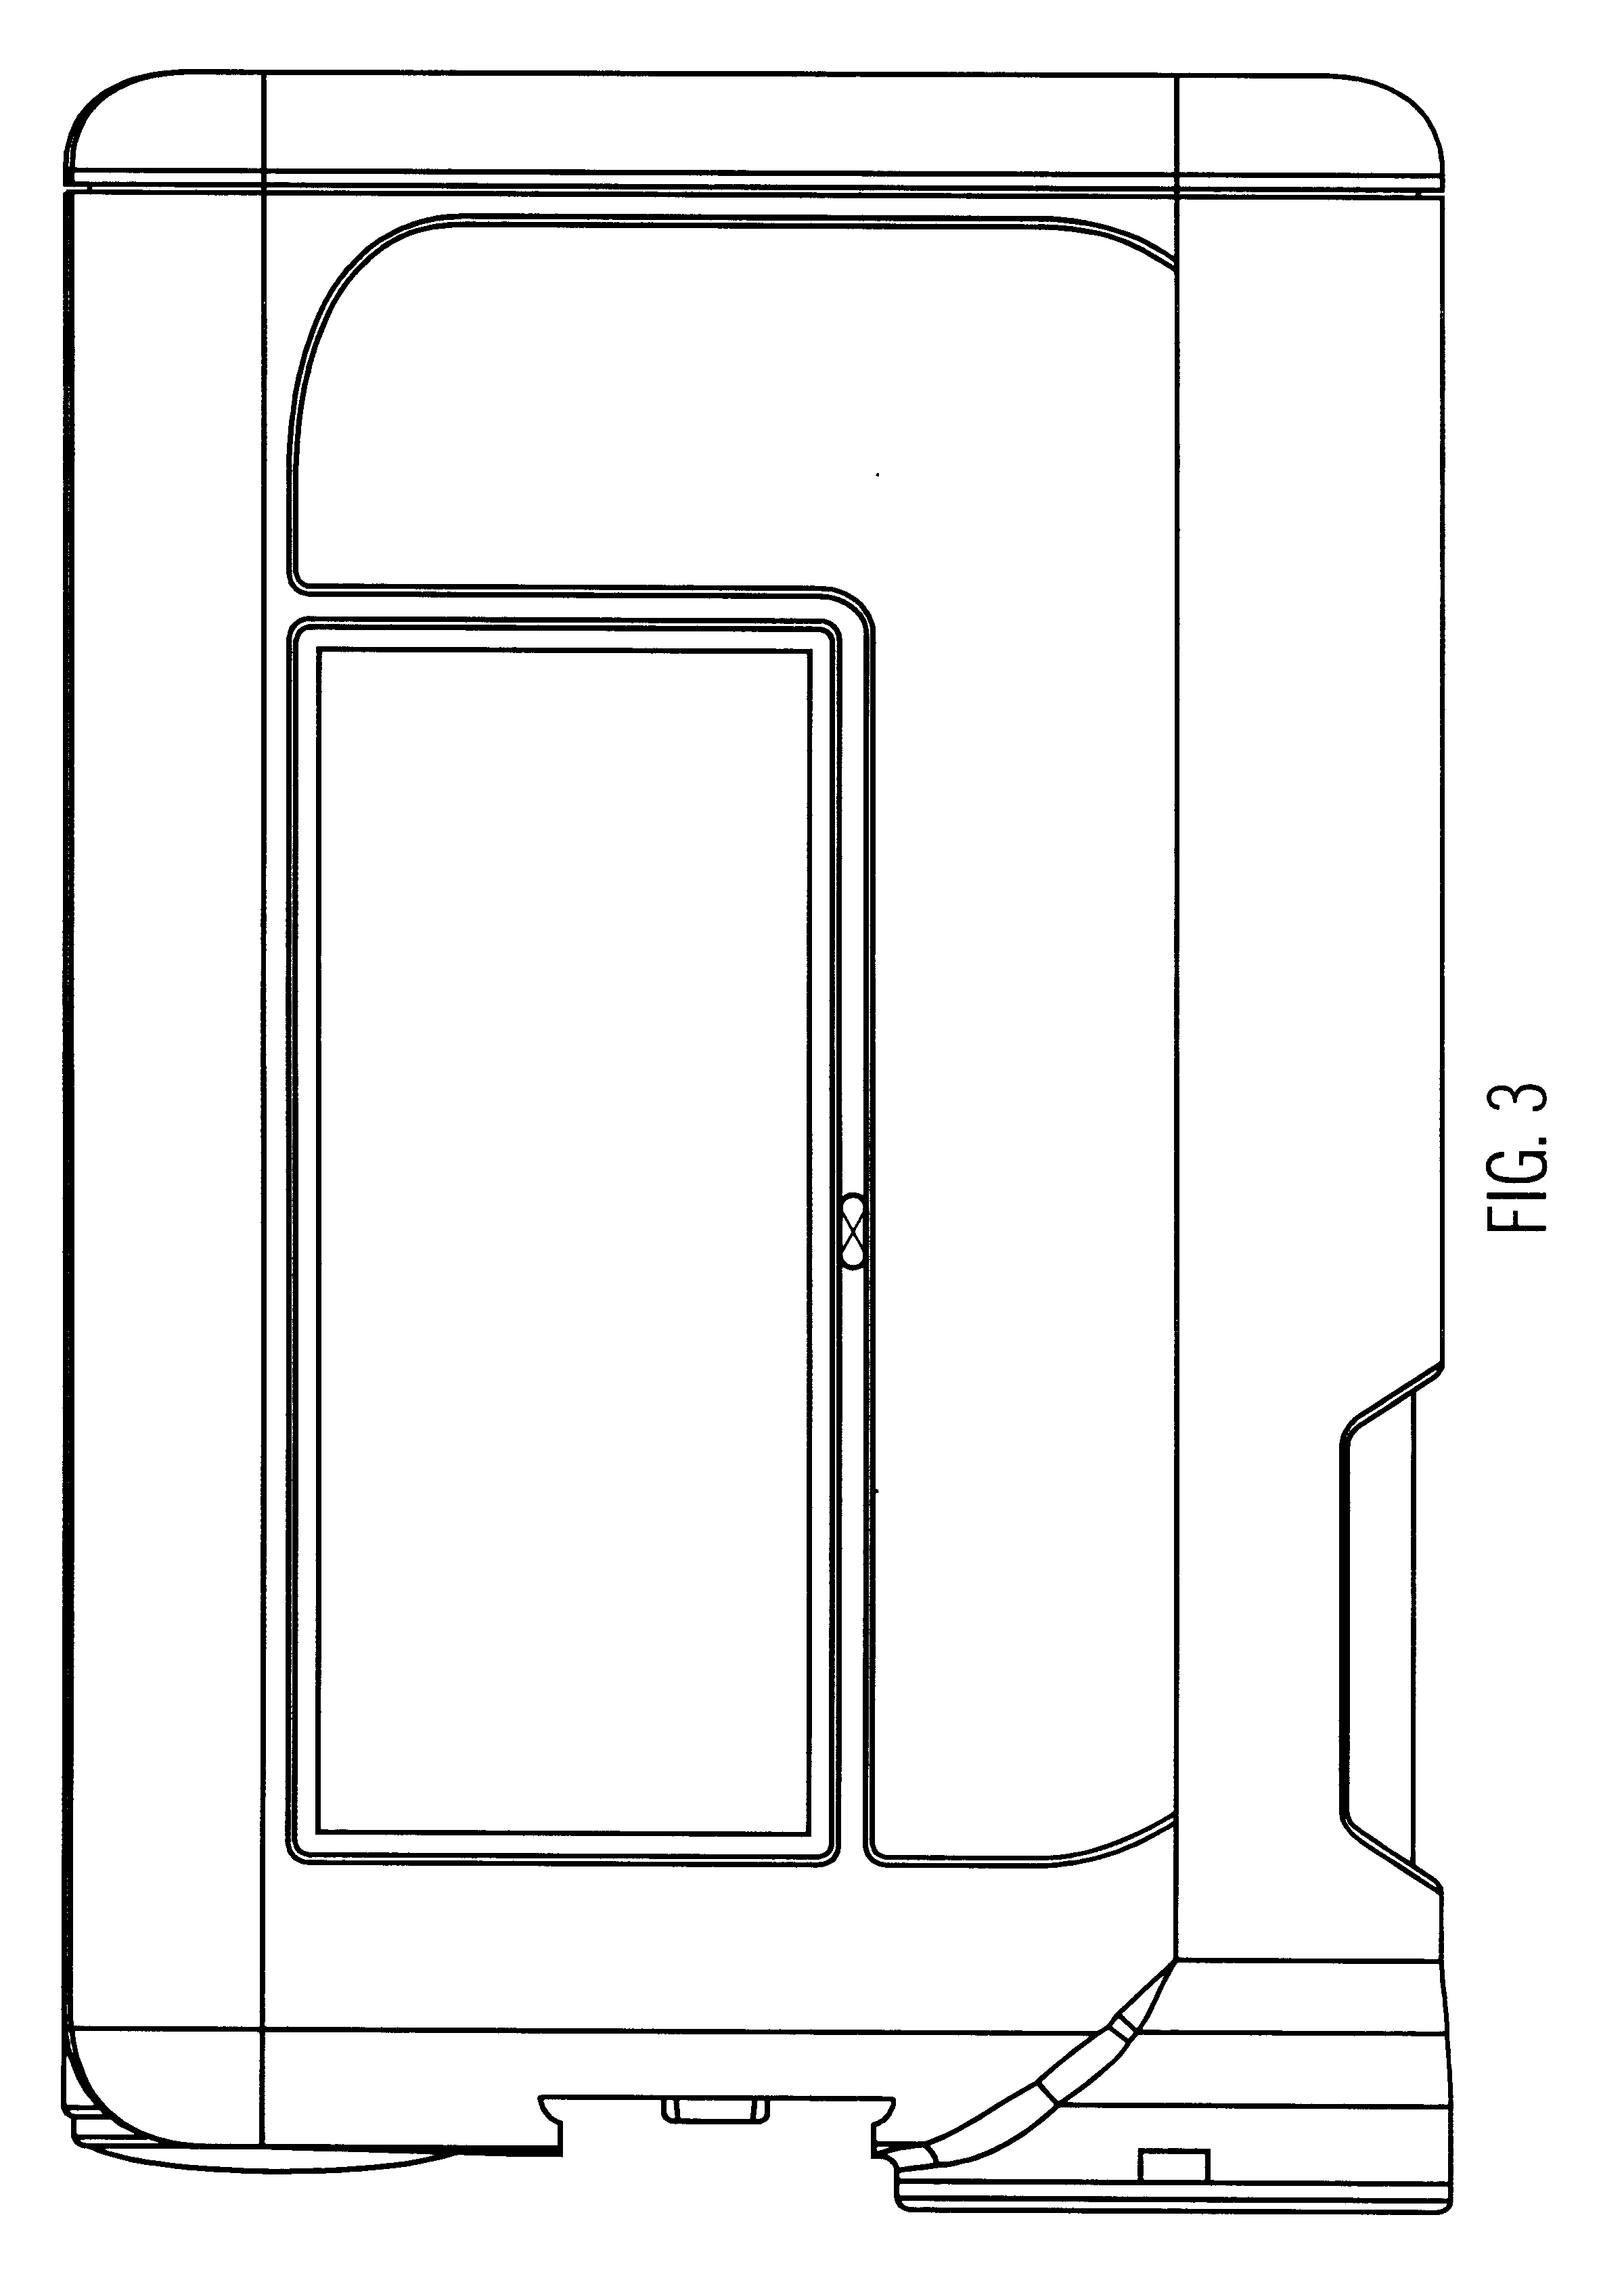 Infusion Systems Perspective : Patent usd infusion pump for delivery of fluid